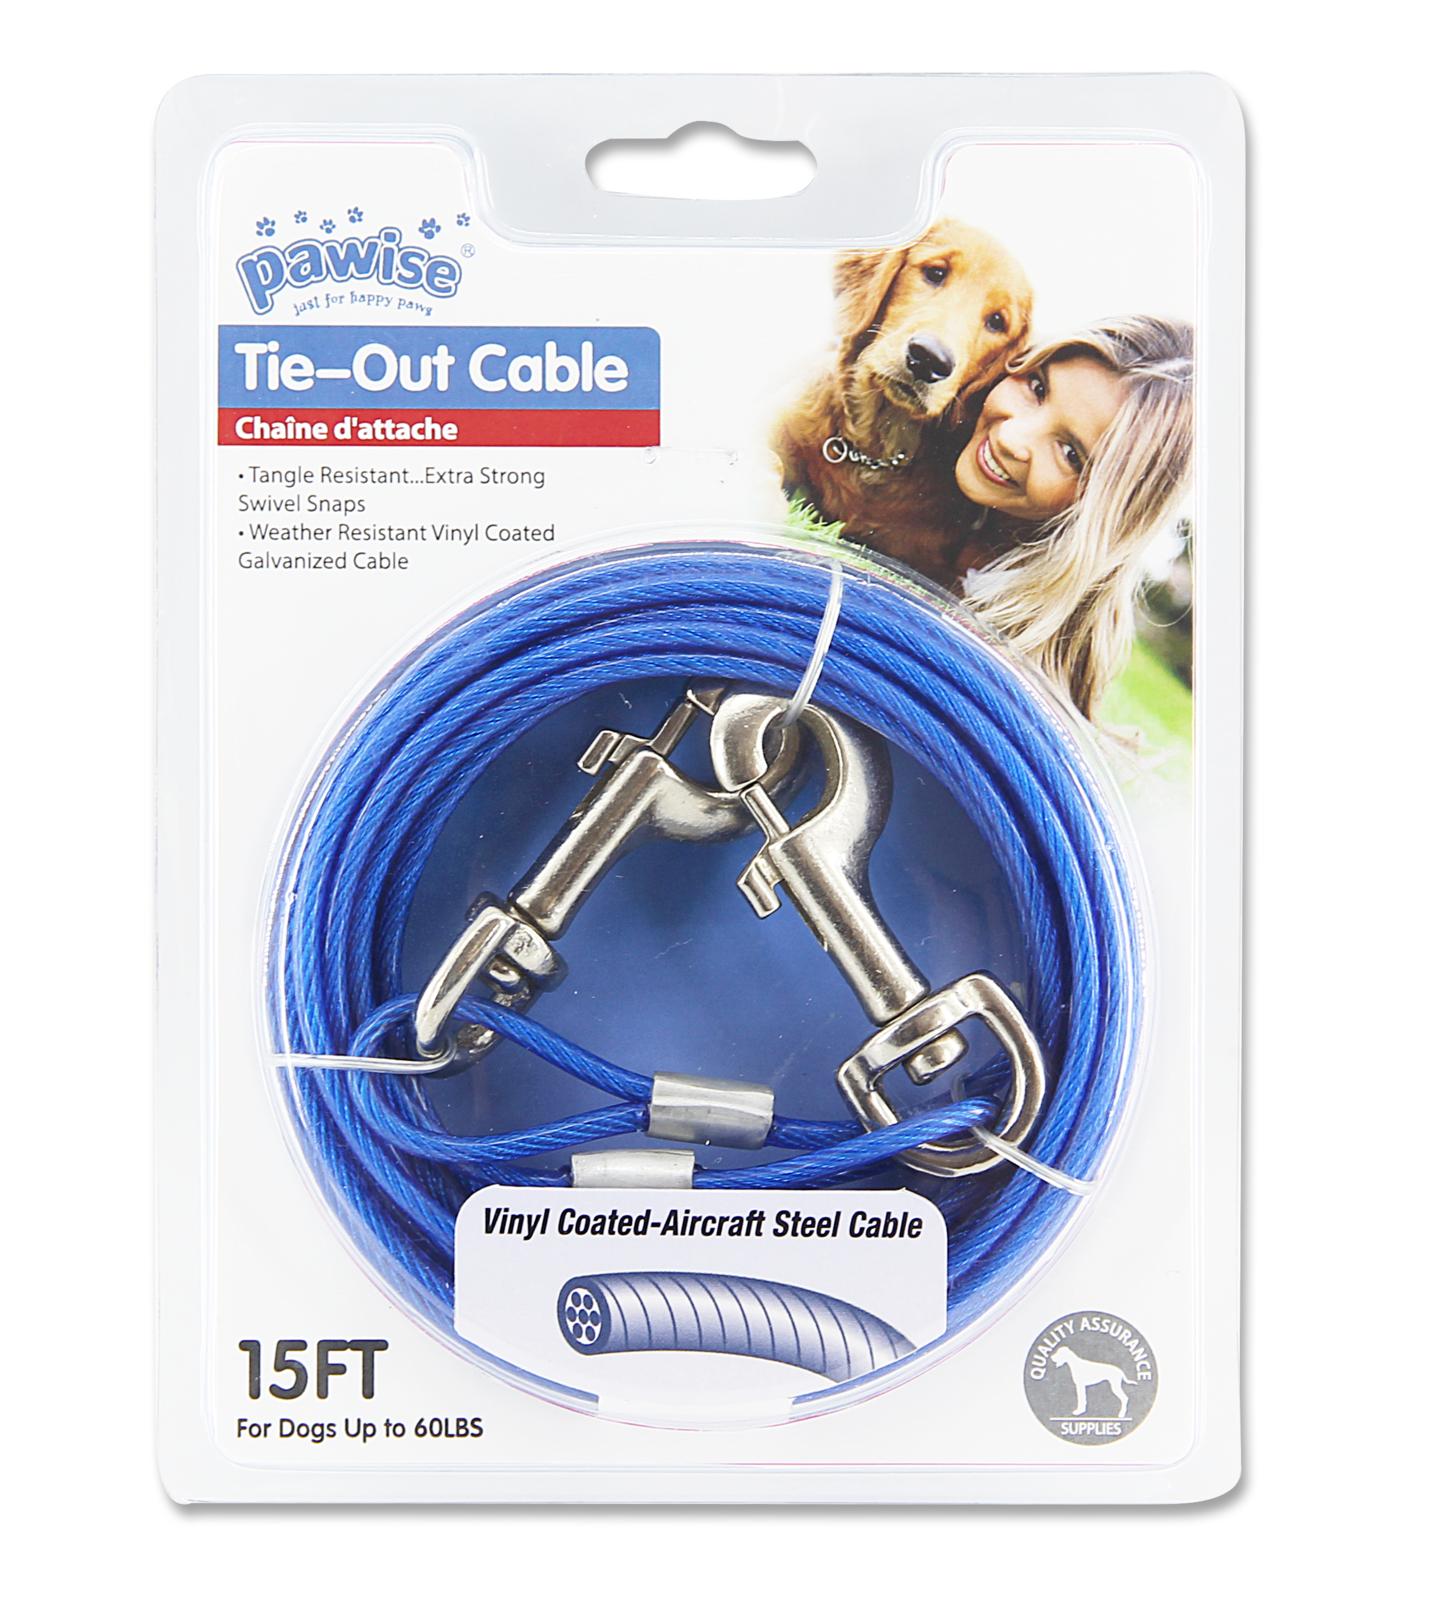 Pawise: Tie Out Cable Red/Blue Assorted image